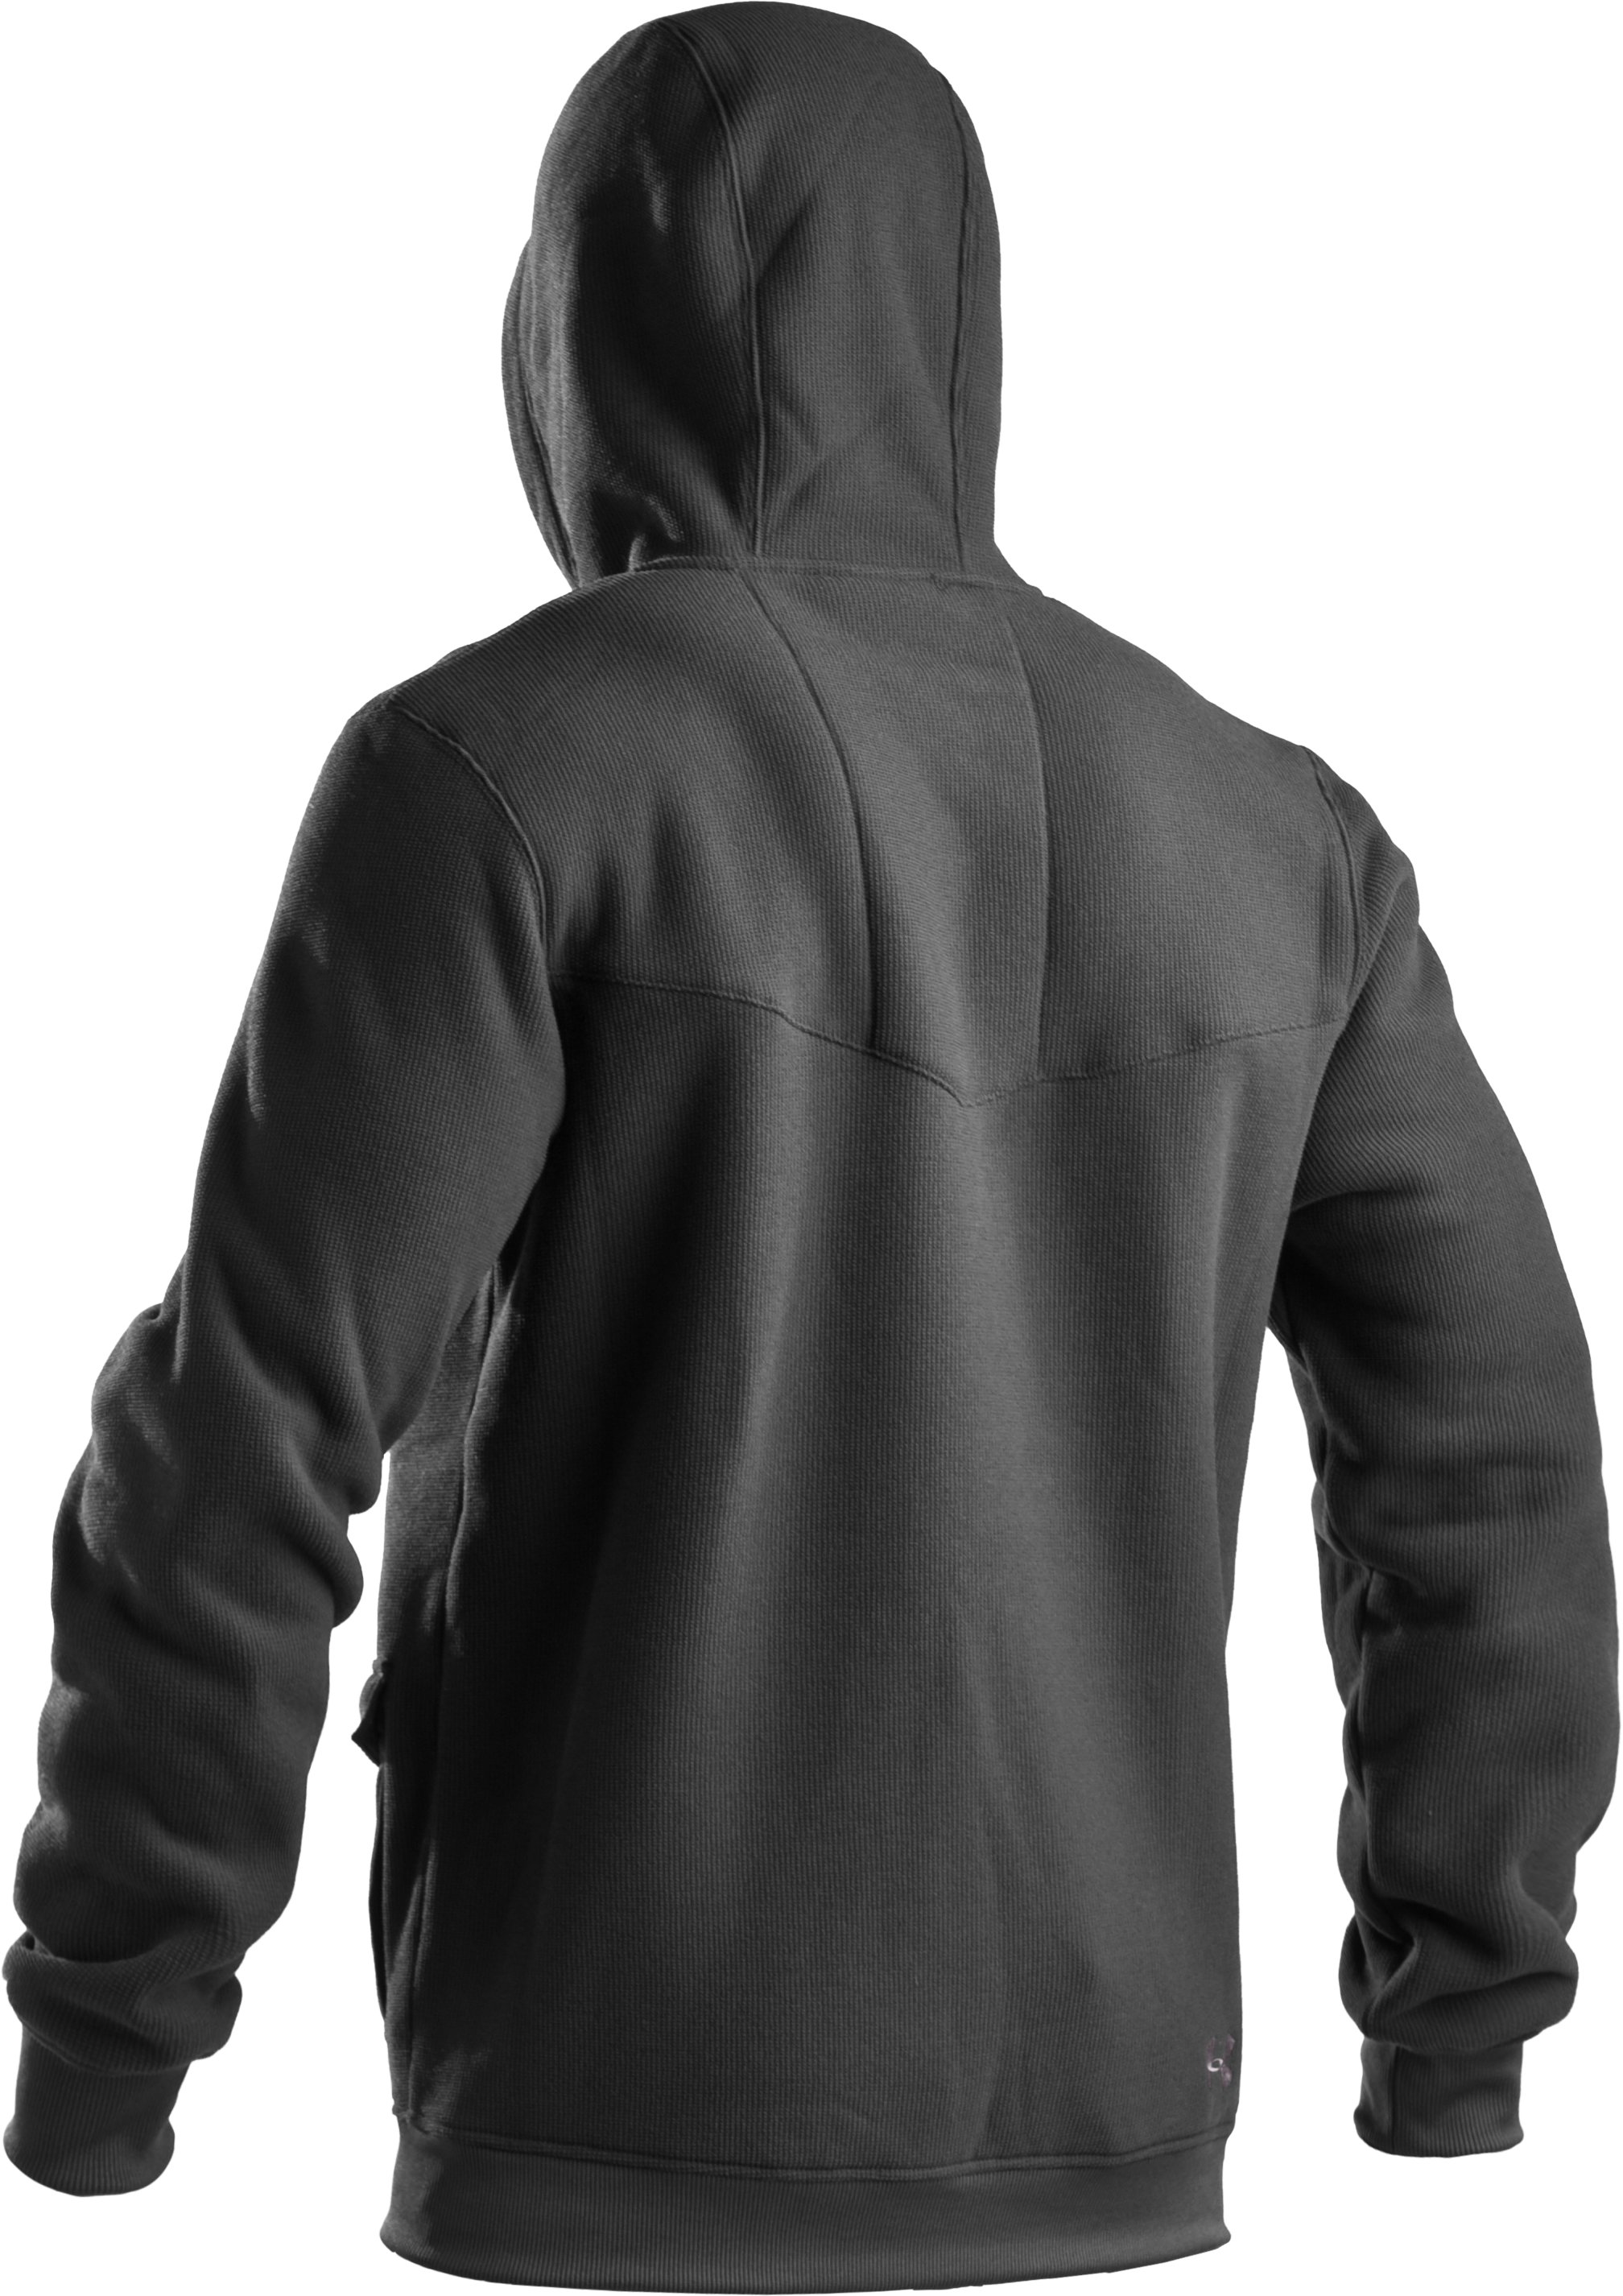 Men's Kutta Performance Hoodie, Black